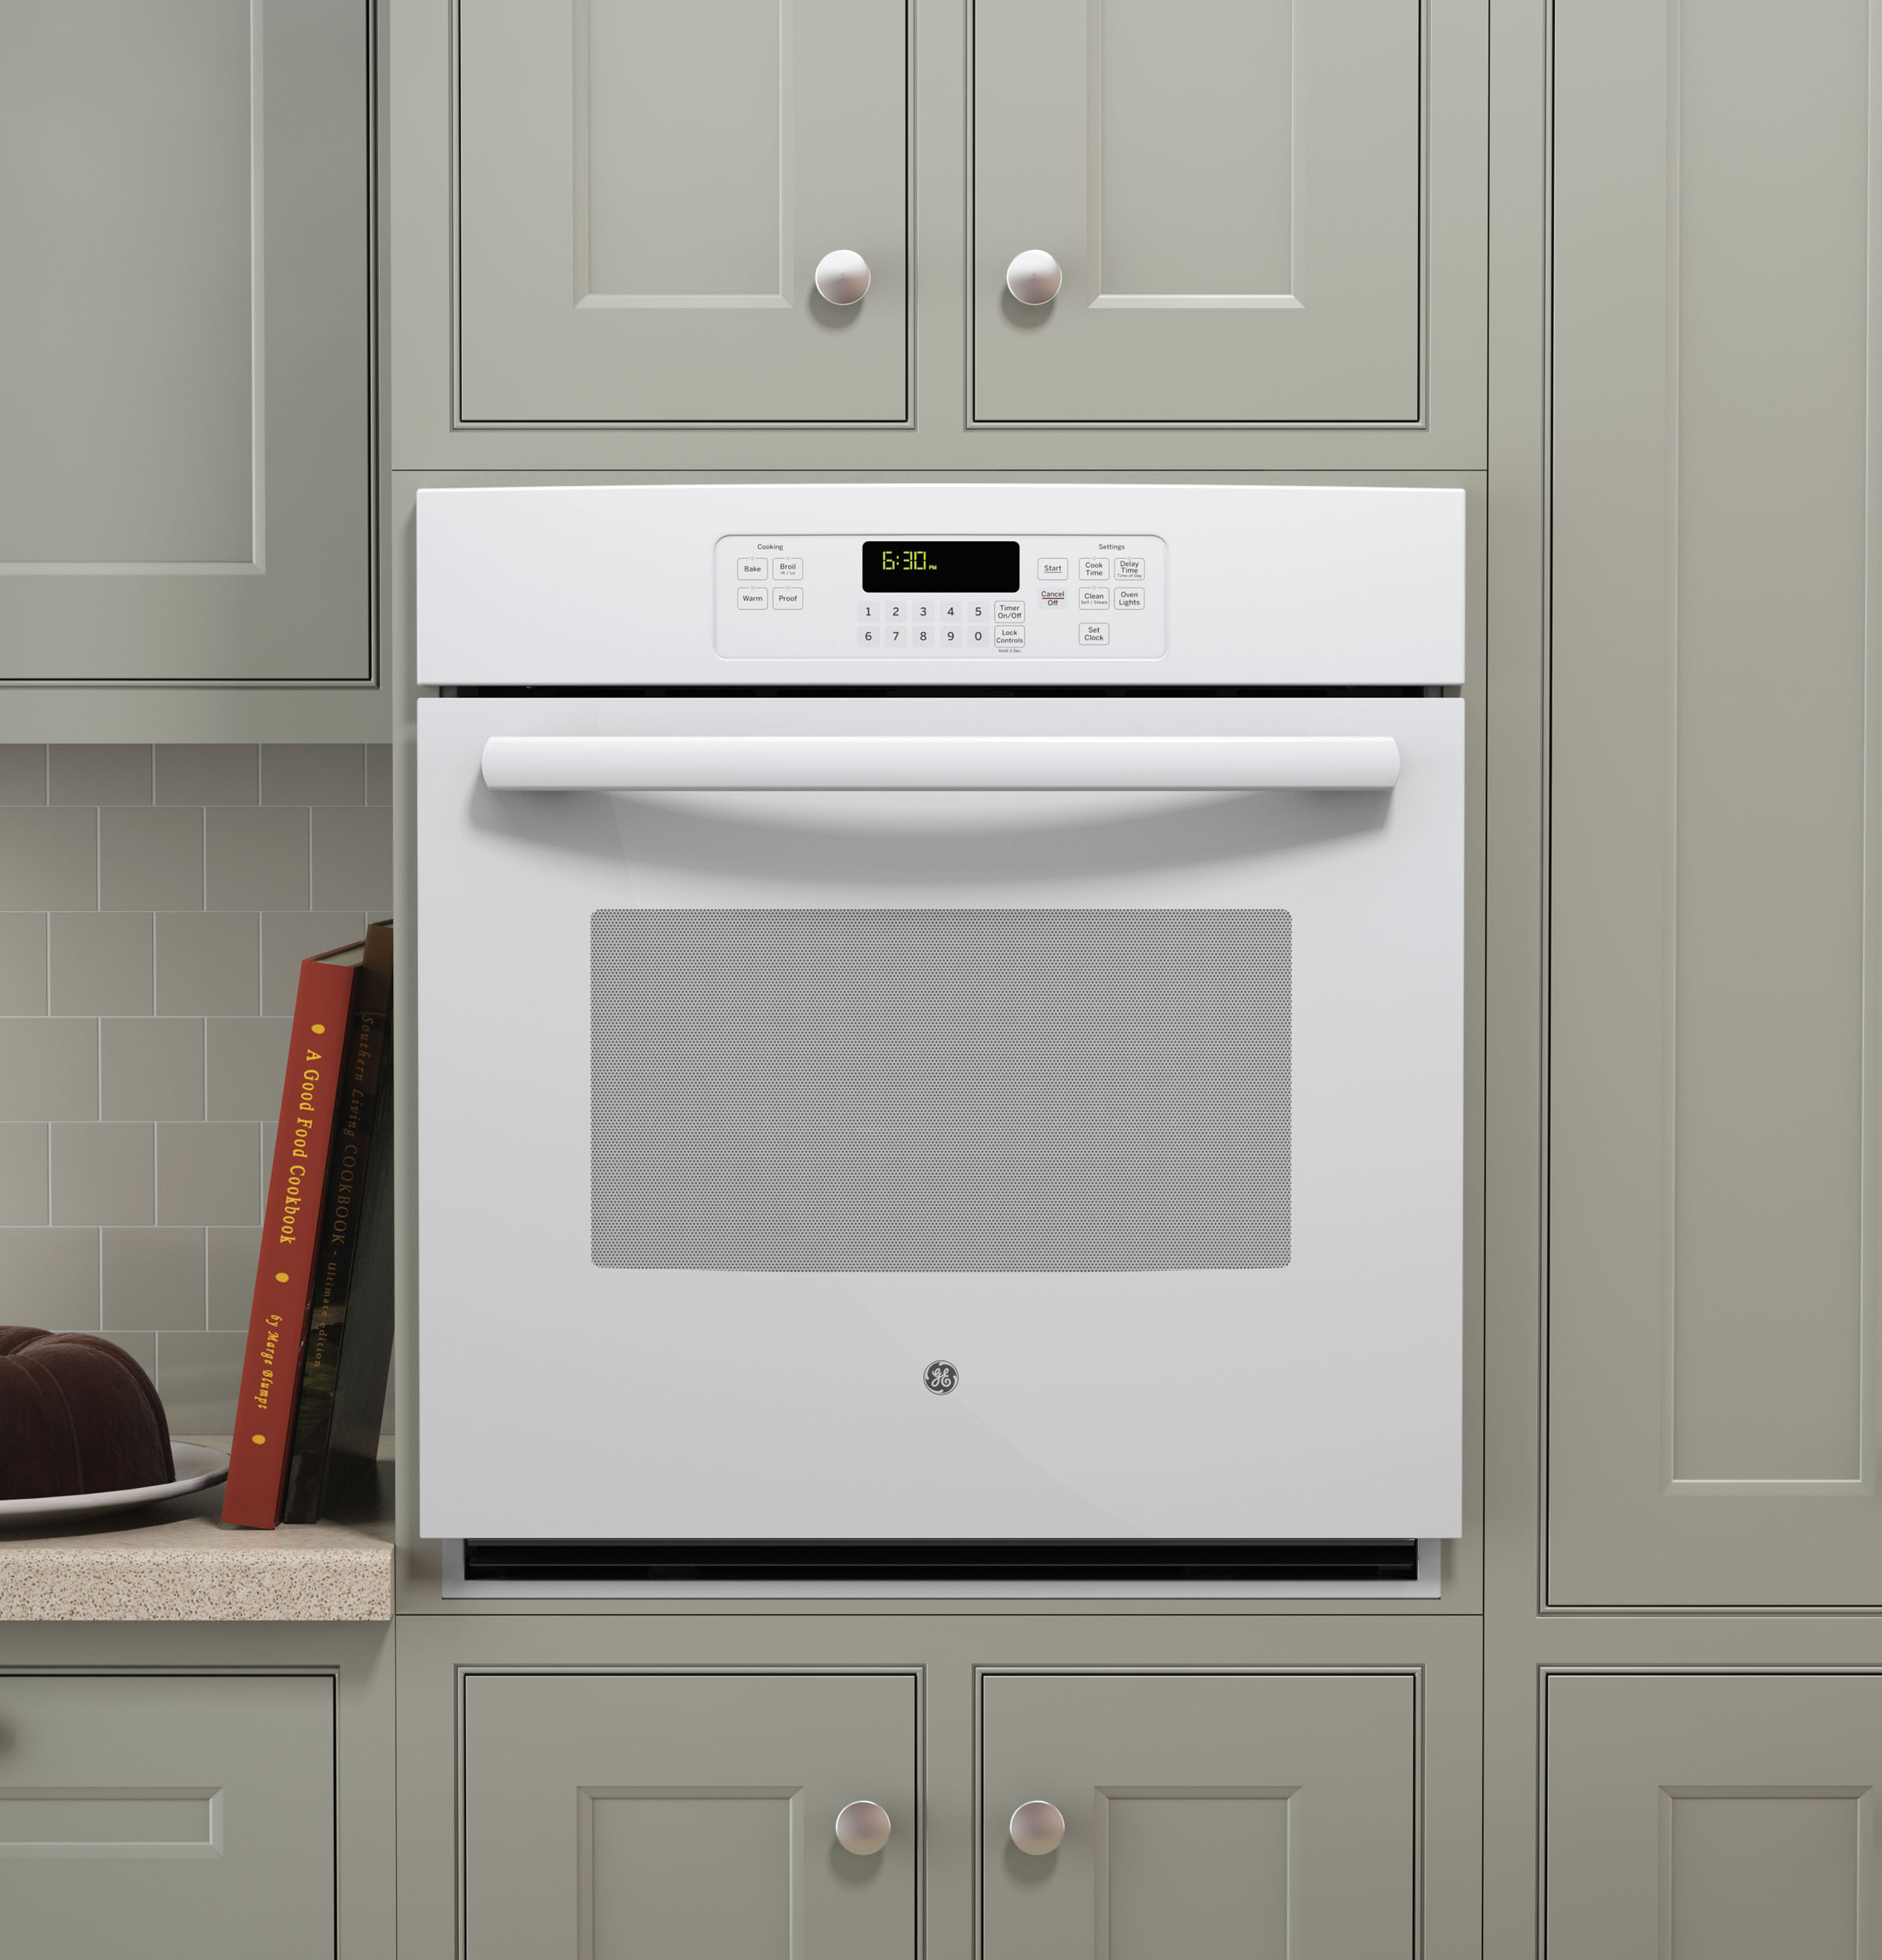 Ge 27 Built In Single Wall Oven Jk3000dfww Appliances House Wiring To A Product Image